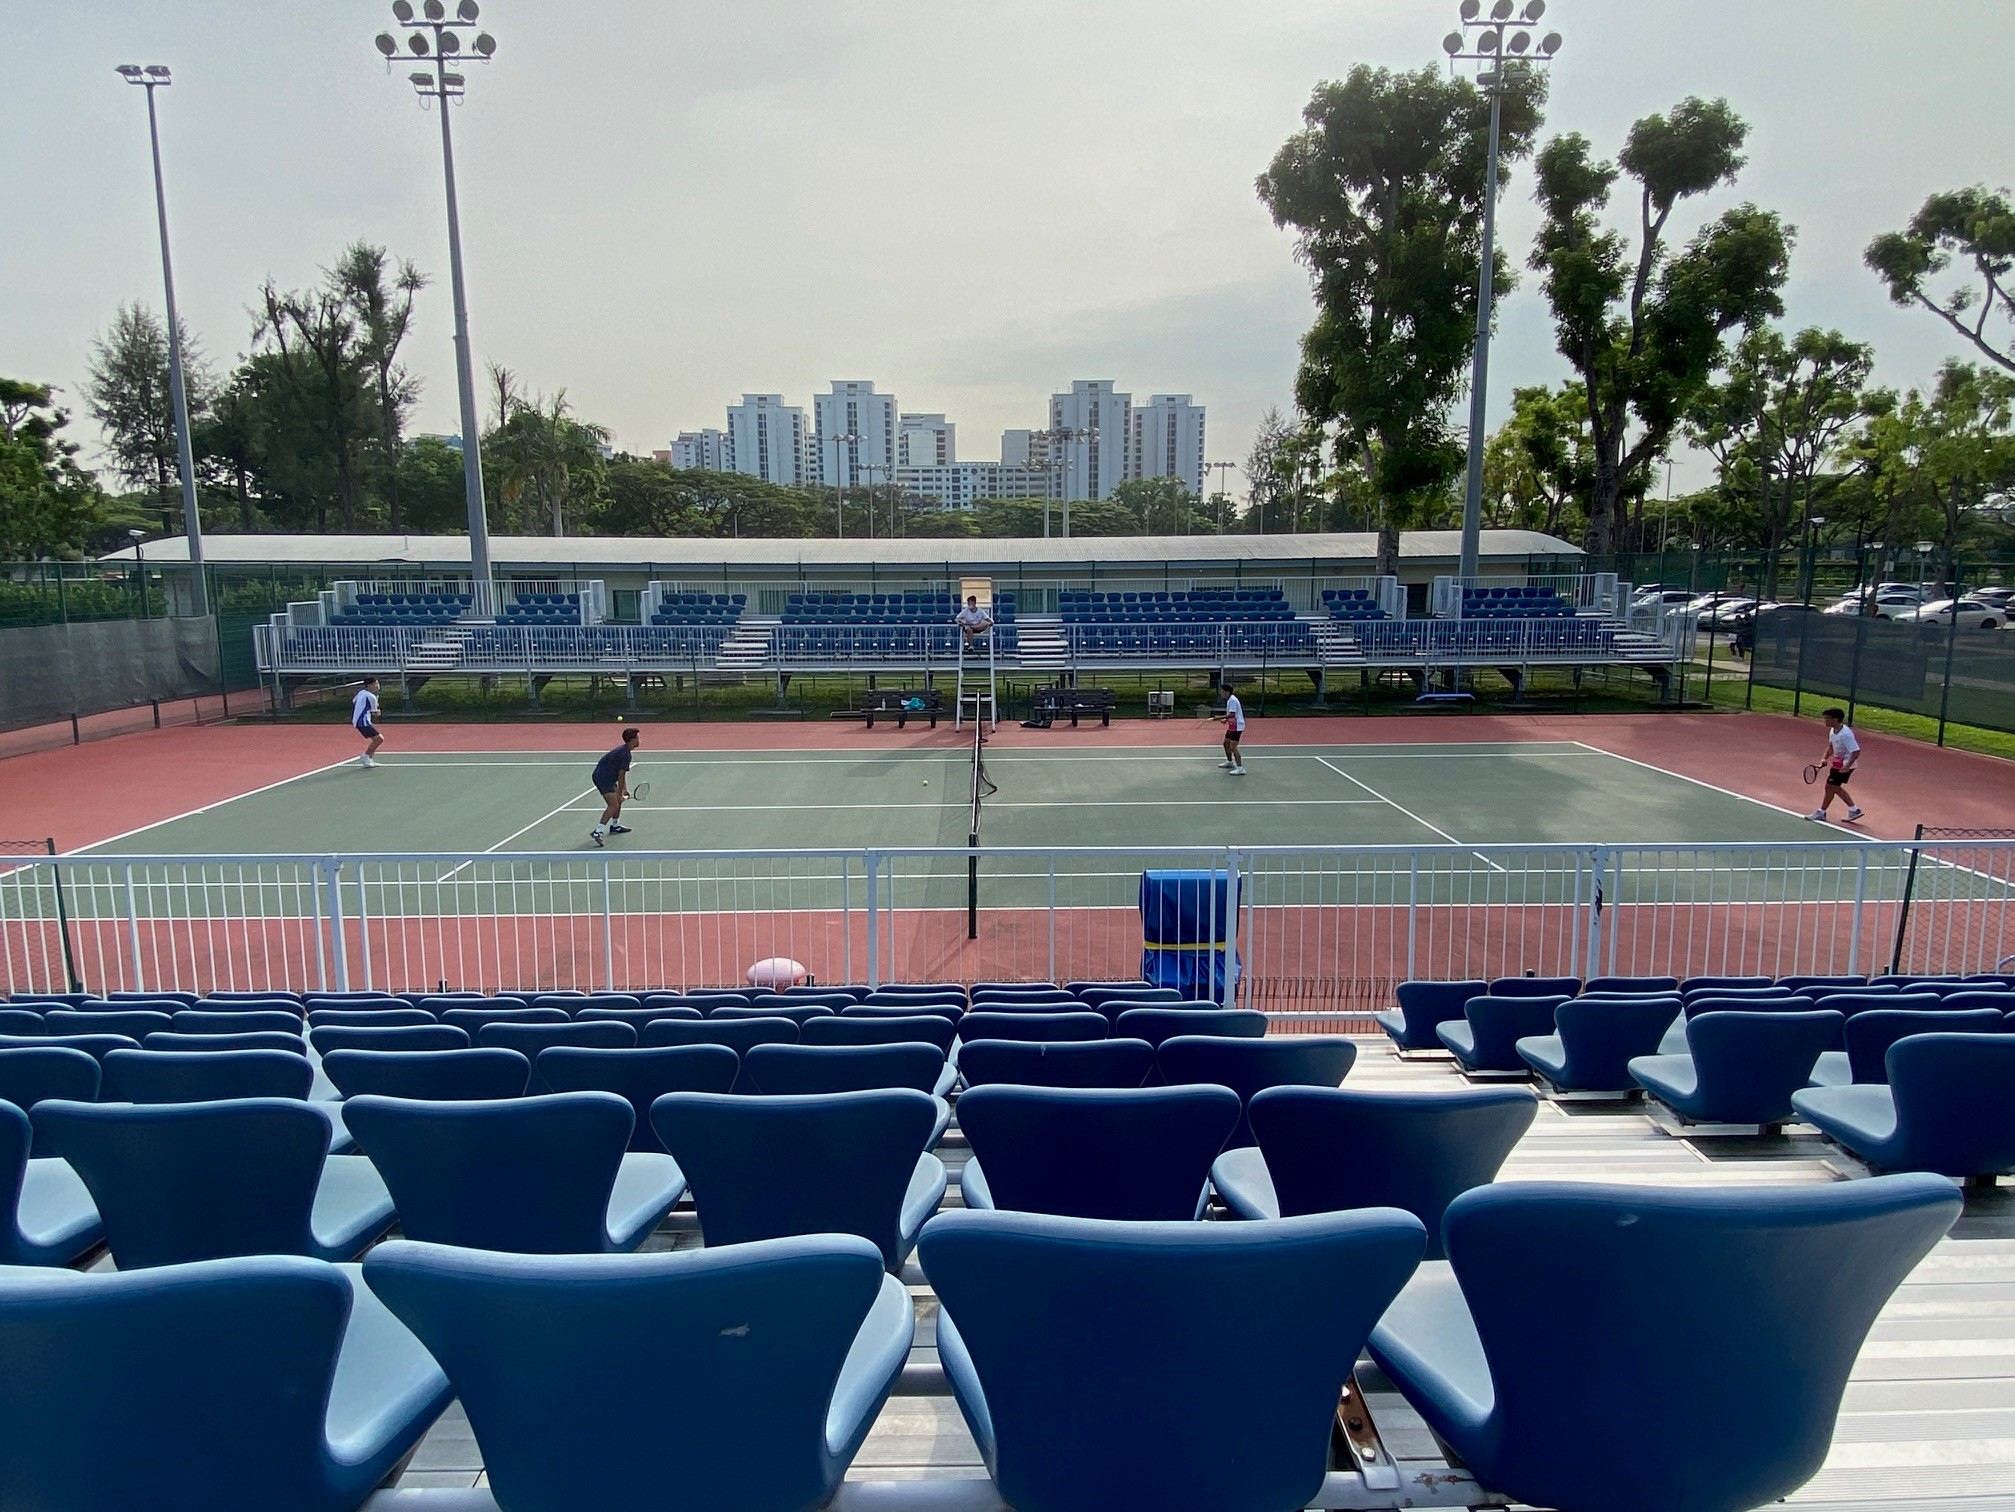 NSG B Div boys tennis -- second doubles match in action at Kallang Tennis Centre